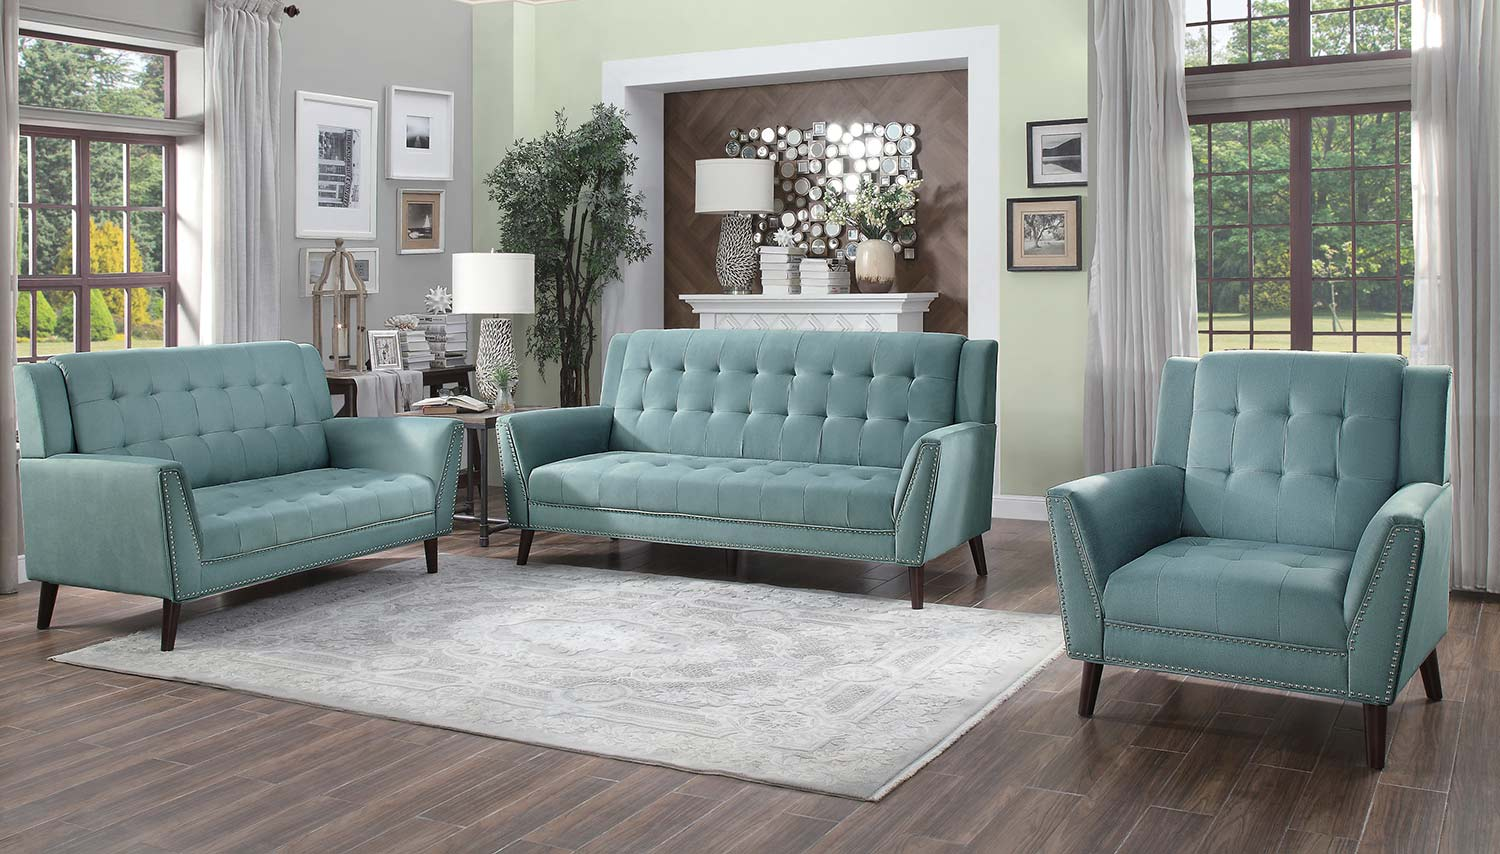 Homelegance Broadview Sofa Set - Fog gray